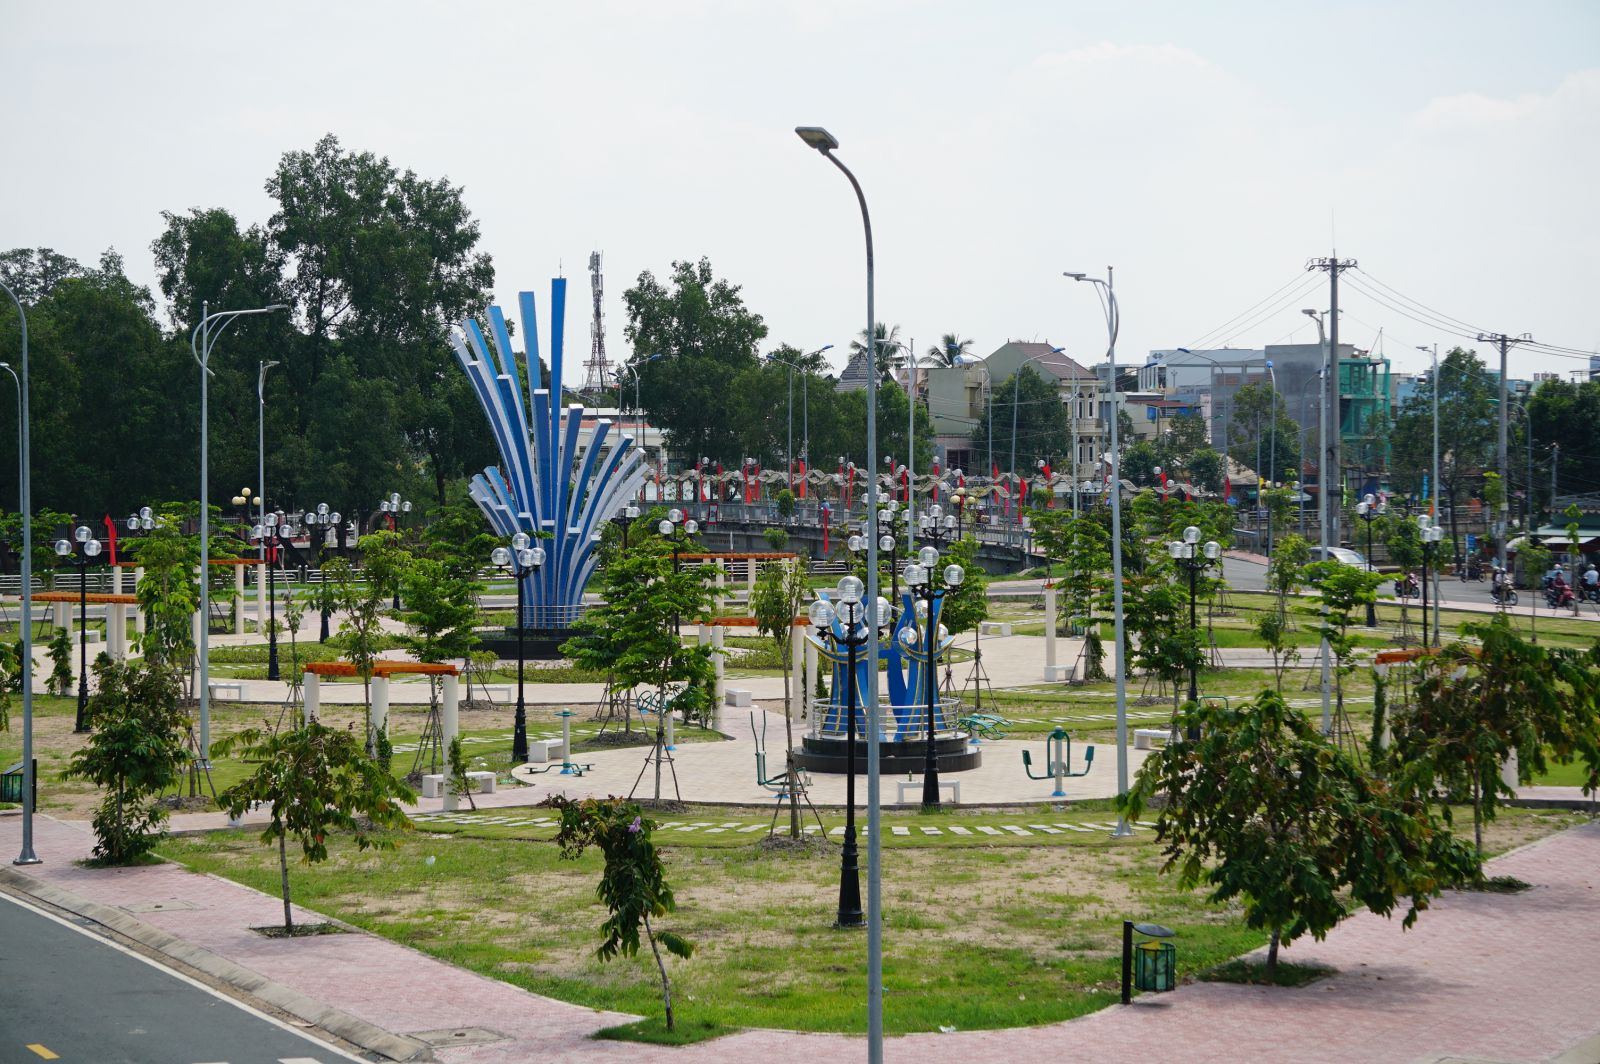 The key project in the term 2020-2025 is to complete Park 2 phase 2